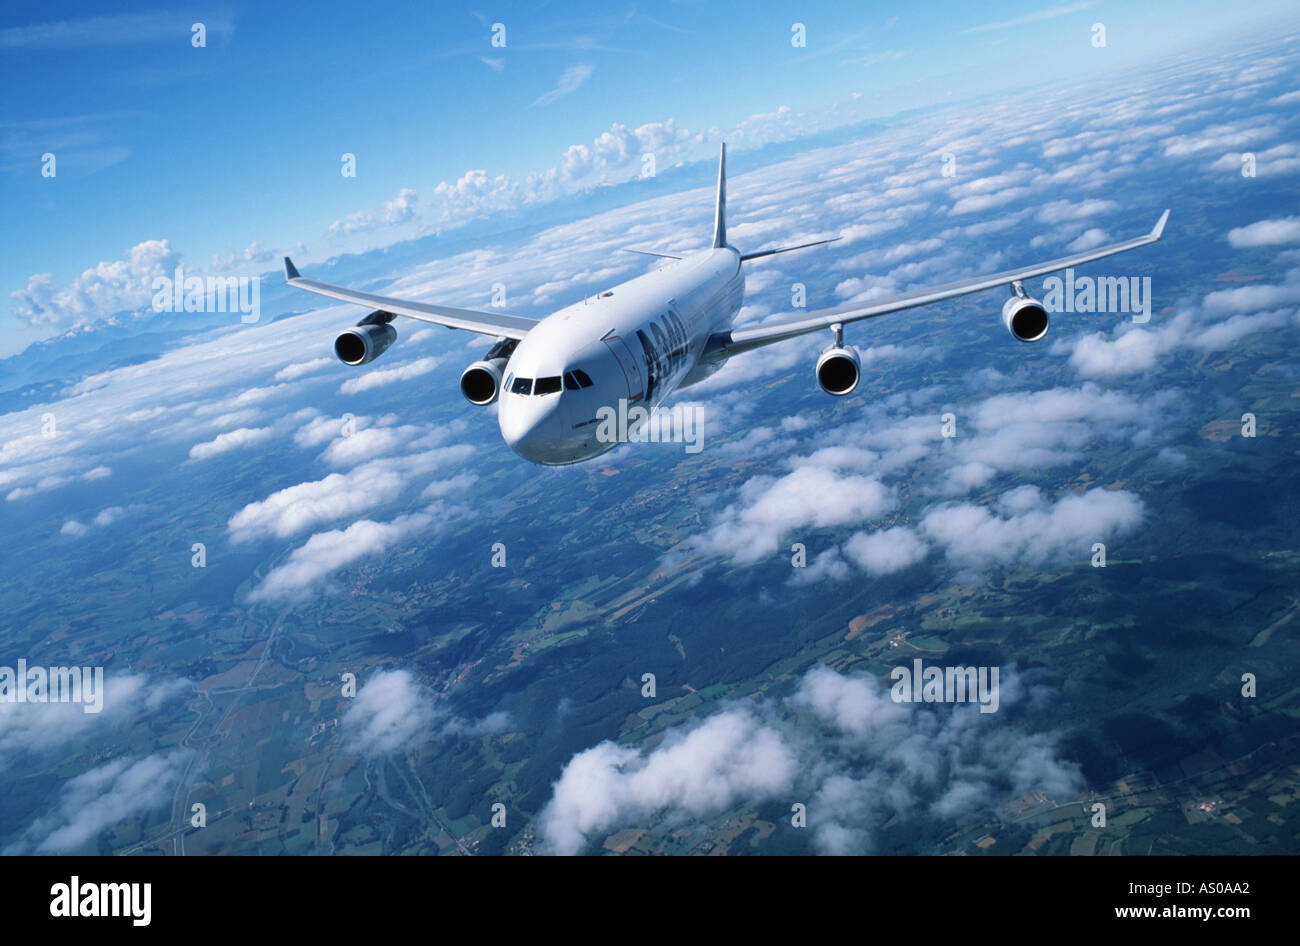 passenger aircraft in flight Airbus A340 - Stock Image